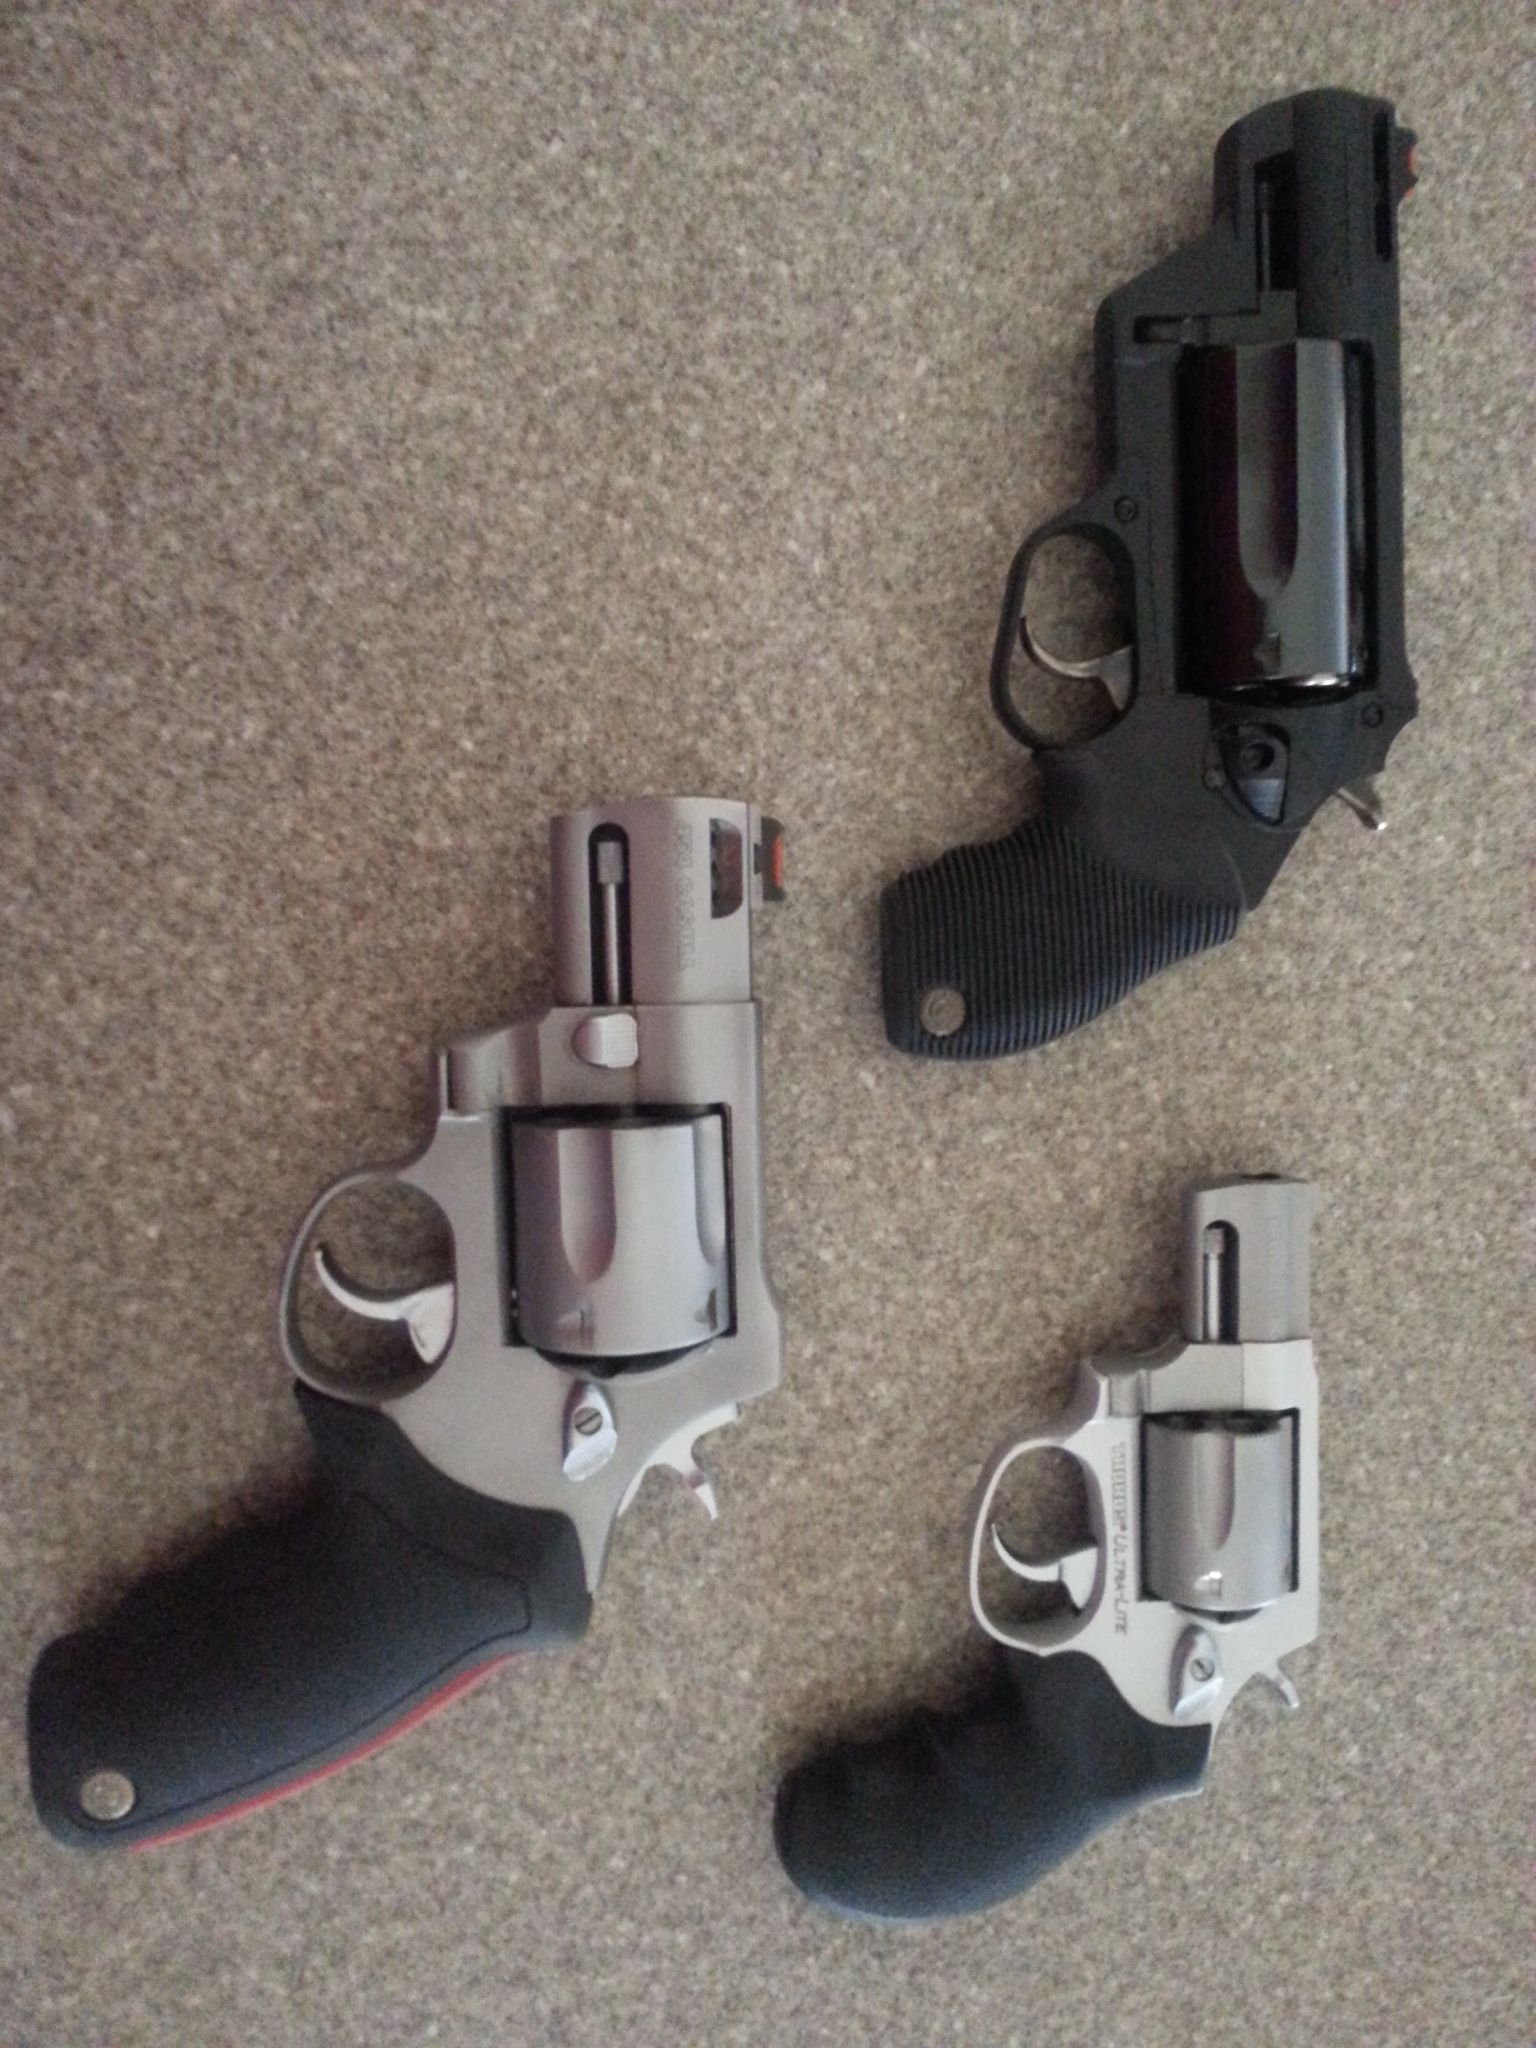 Walther P99 Silenced Survive Amp Thrive T Exploded View Of The Taurus Pt92 Af Also Sig 1911 Diagram 454 Casull Snubnose Revolvers